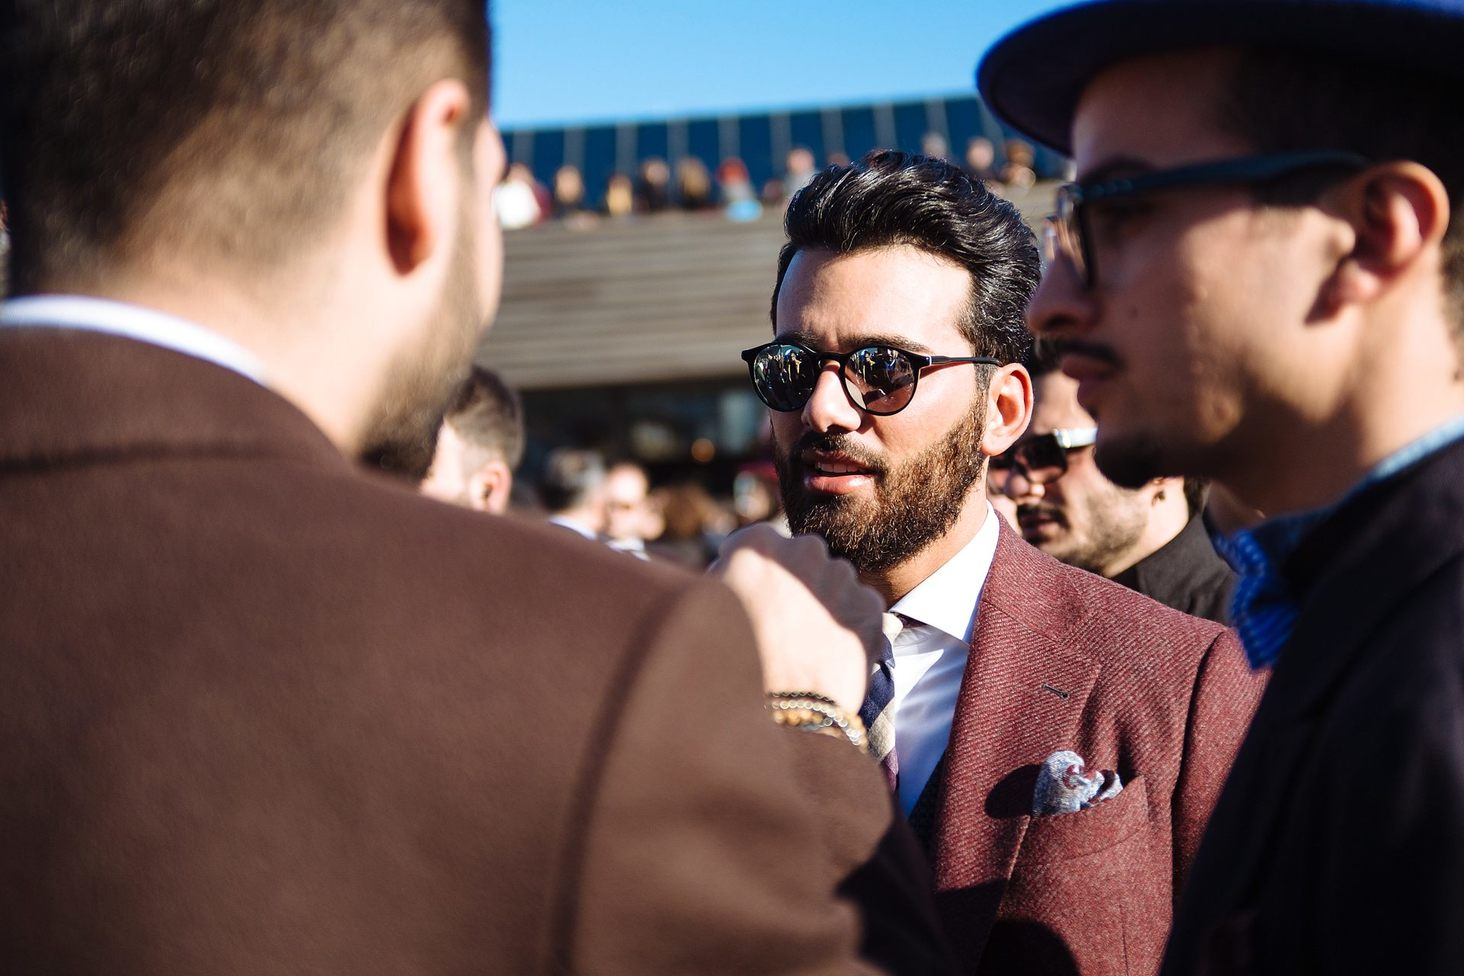 Firenze-89-Pitti-Uomo-Fashion-Photography-18